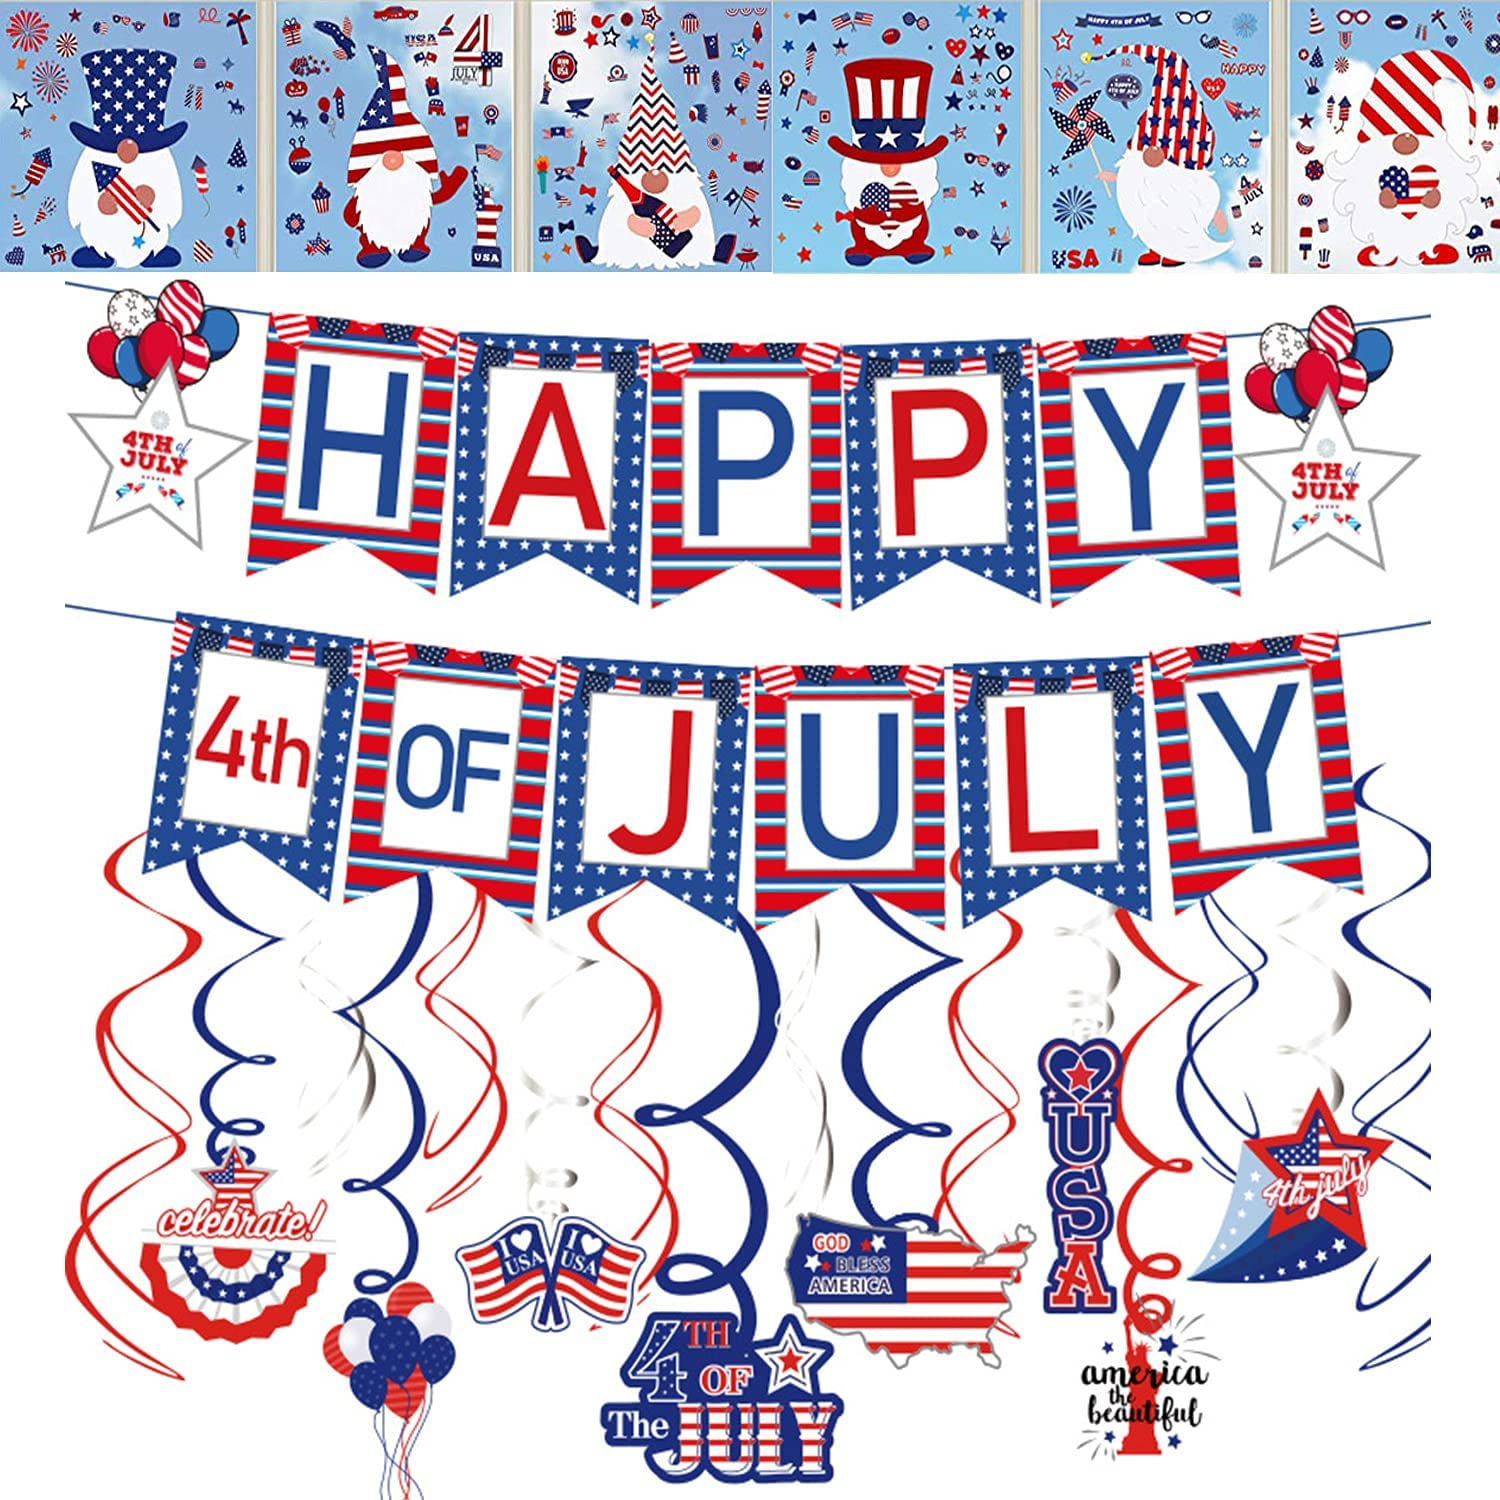 4th of July Patriotic Decorations Set,Red & White & Blue Happy July Banner and 15Pcs Hanging Swirls Party Decor Supplies Window Clings Stickers ,9 Sheet 143 pcs Independence Day American Flag Stars Window Decals Static Stickers for Home Office Party Ornaments